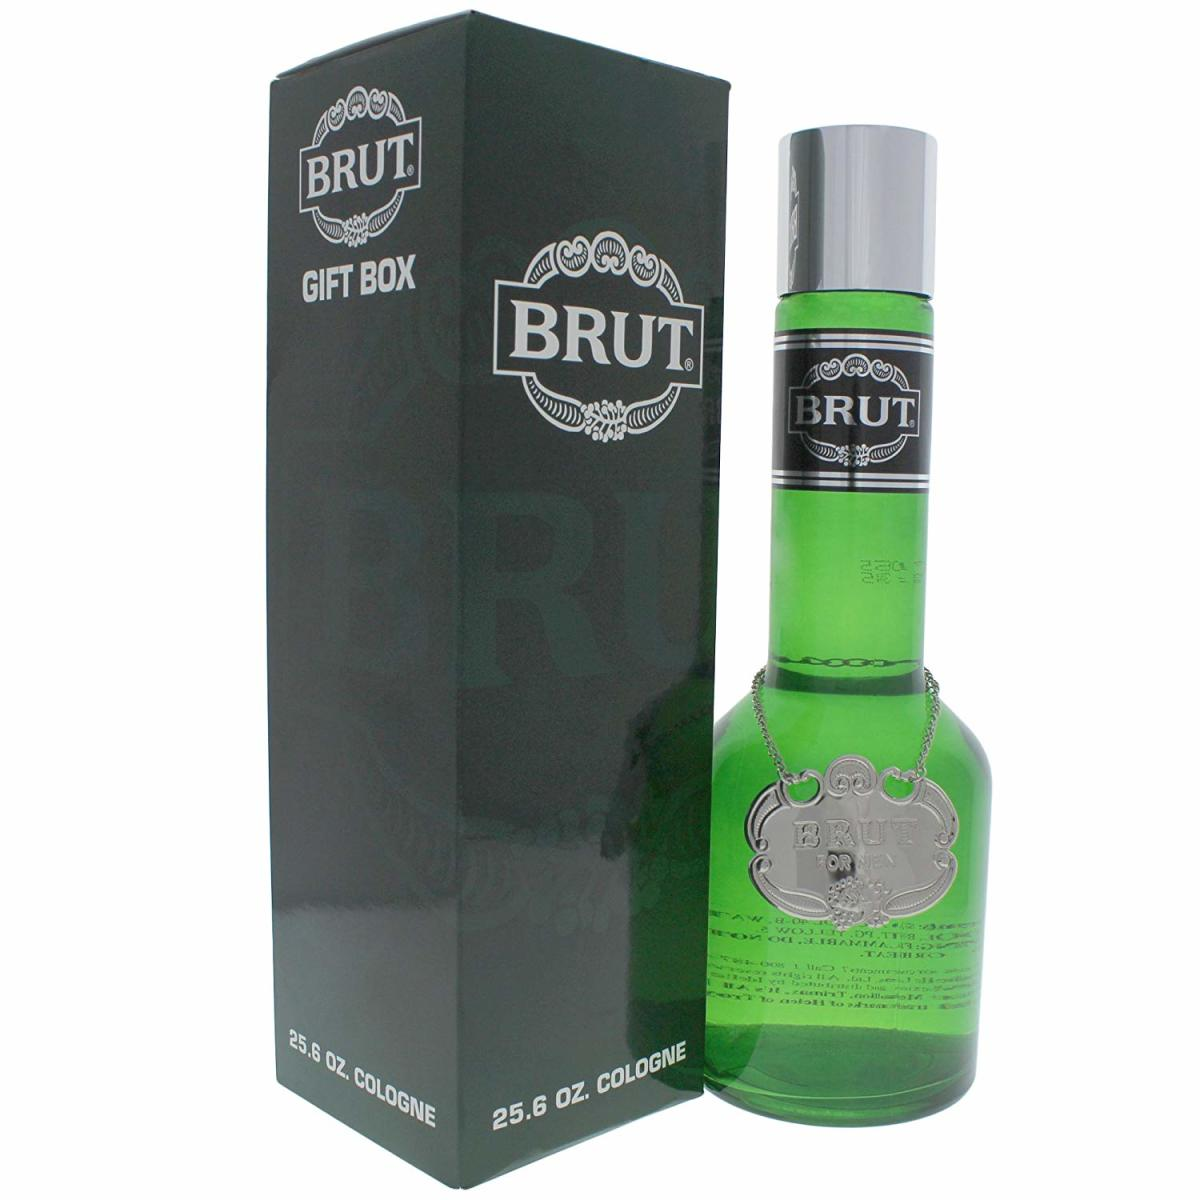 Brut Was Released 51 Years Ago, and Still Smells Like a Man